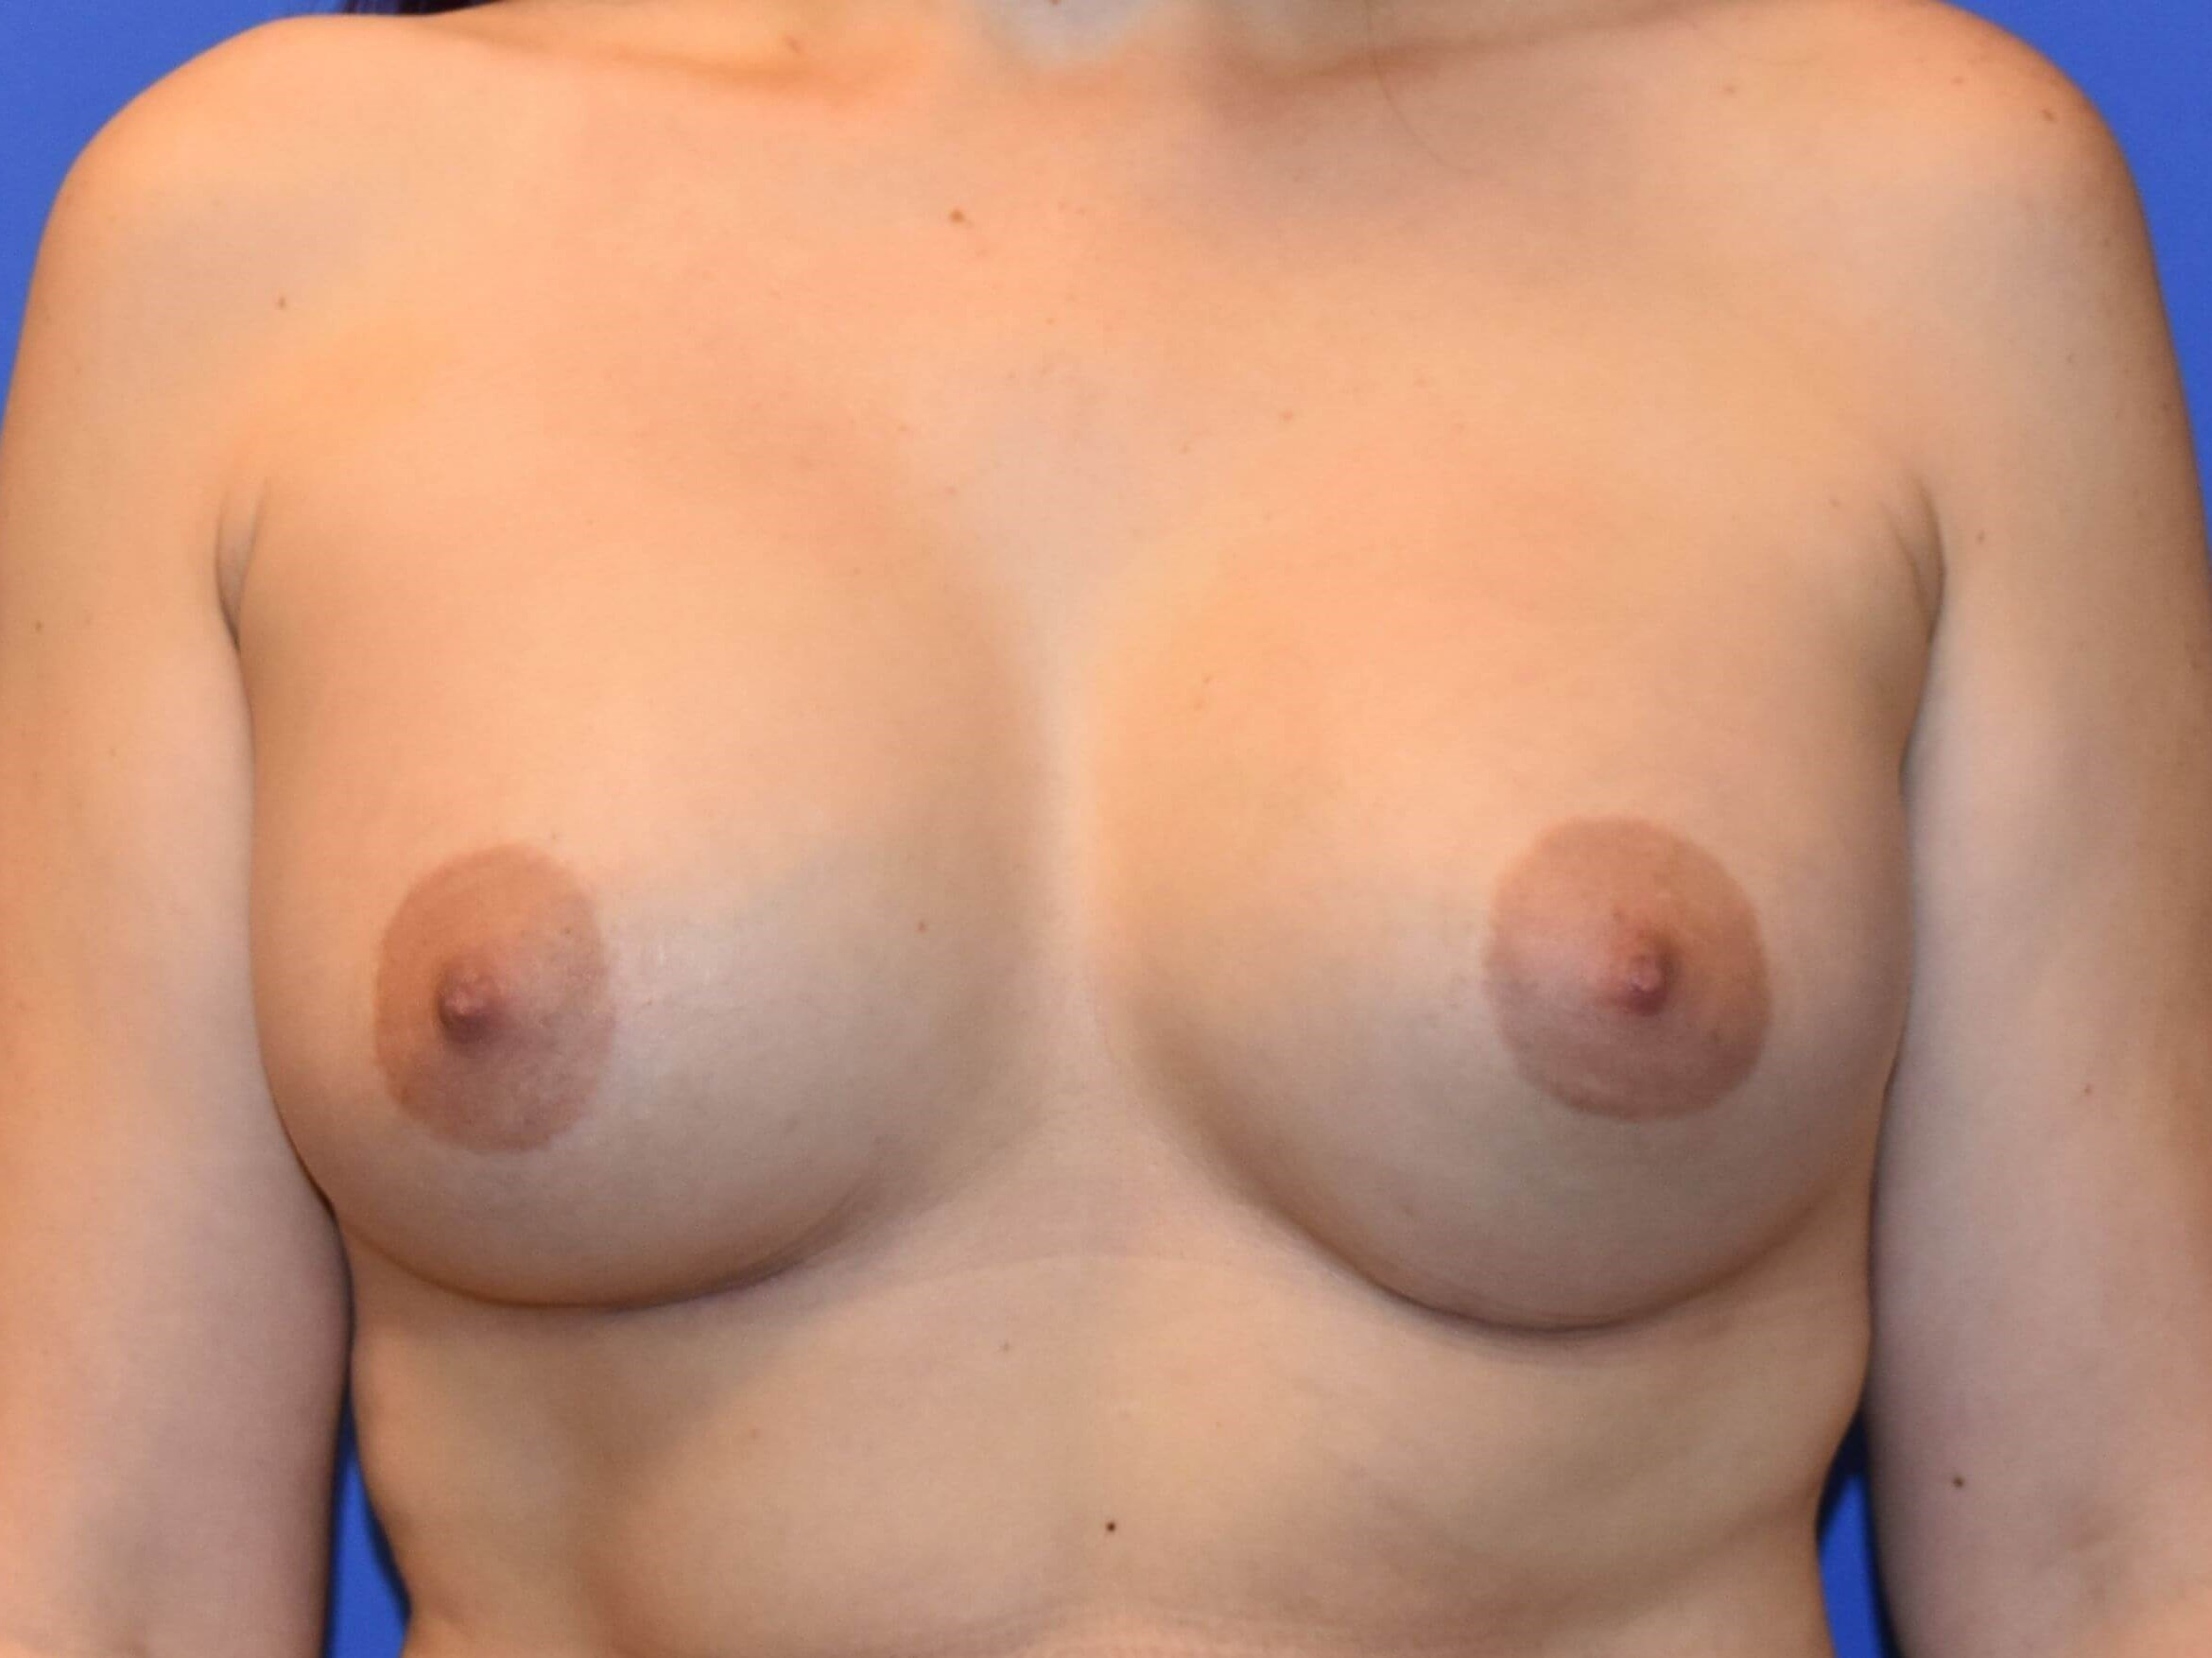 Breast Augmentation - Houston 3 months post-op